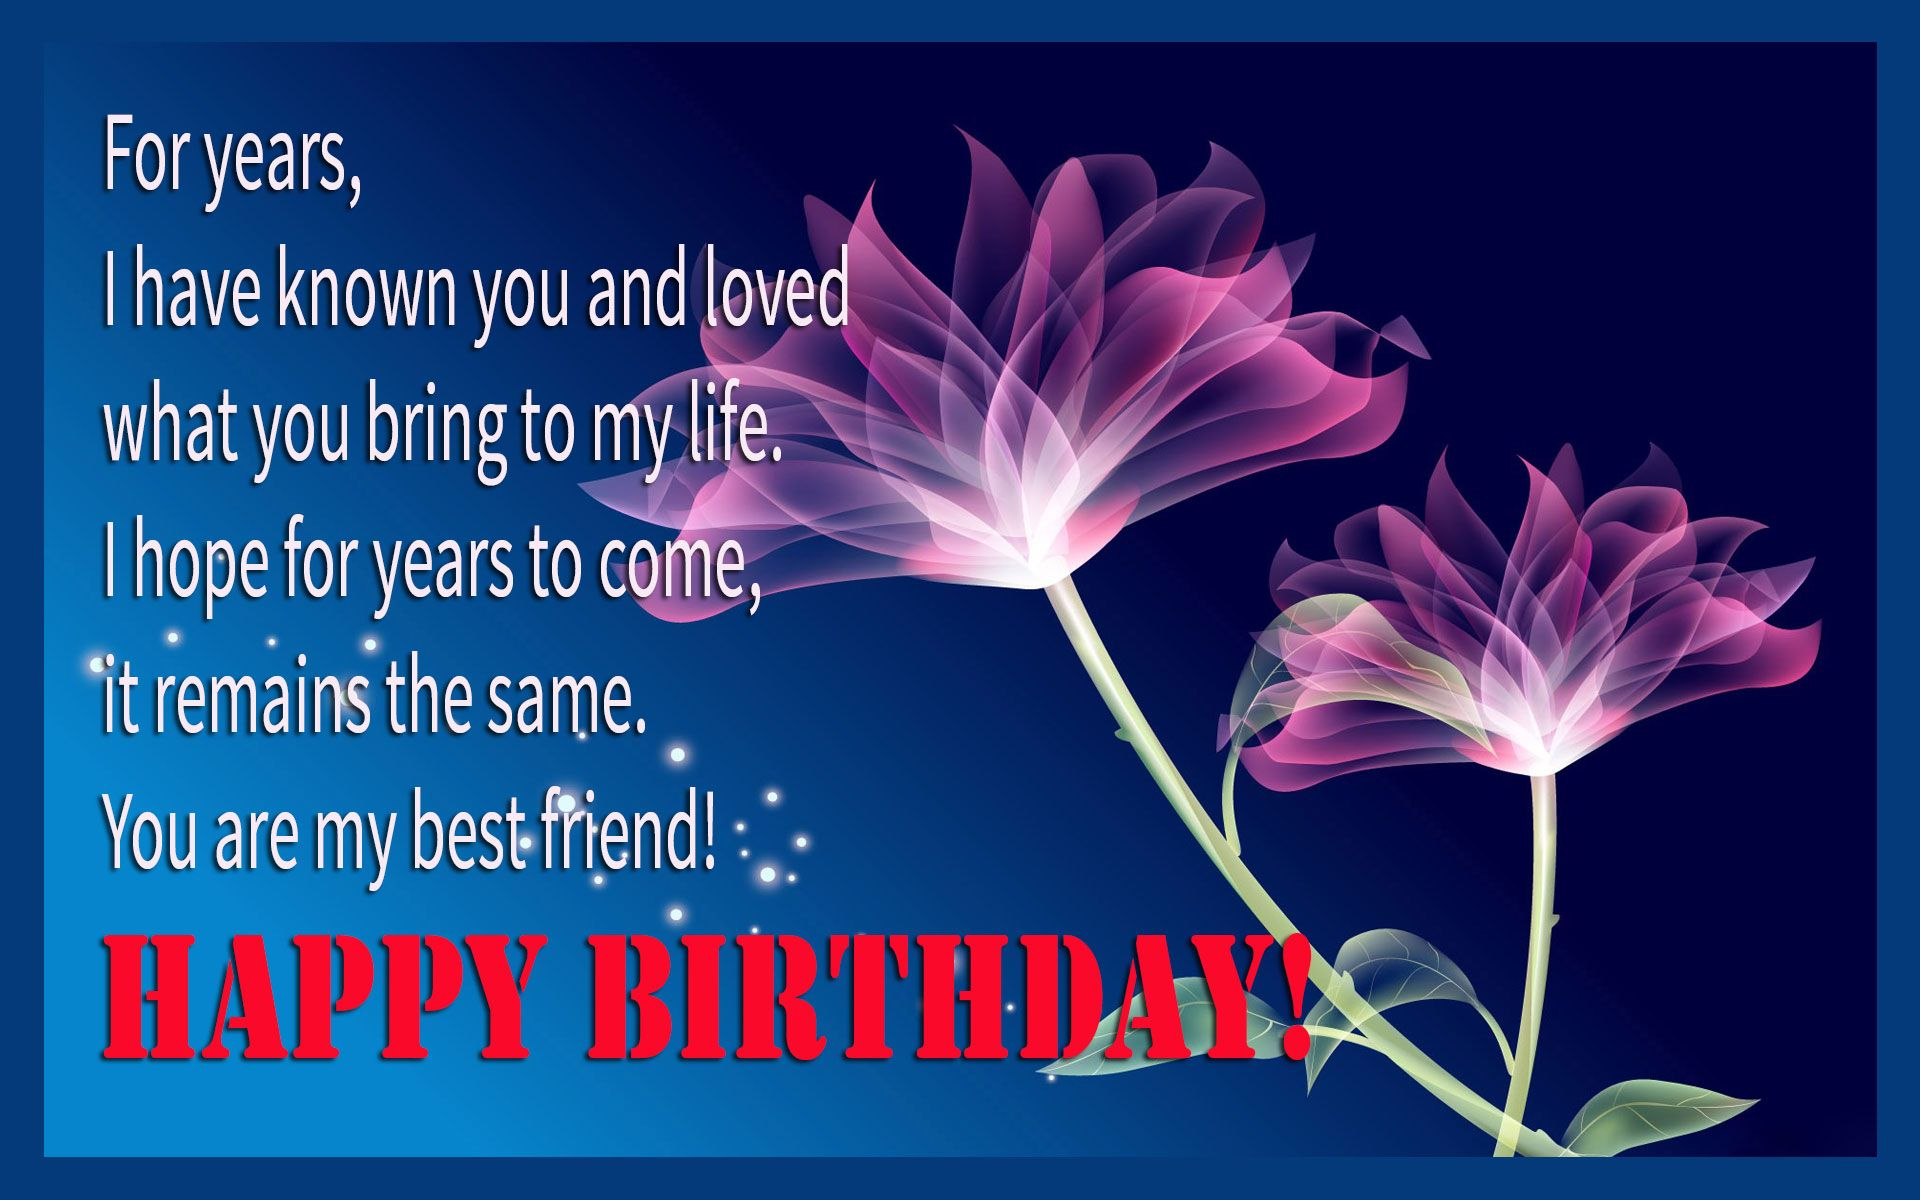 Happy Birthday Wishes Quotes Birthday Quotes For Best Friend Friend Birthday Quotes Anniversary Message For Husband